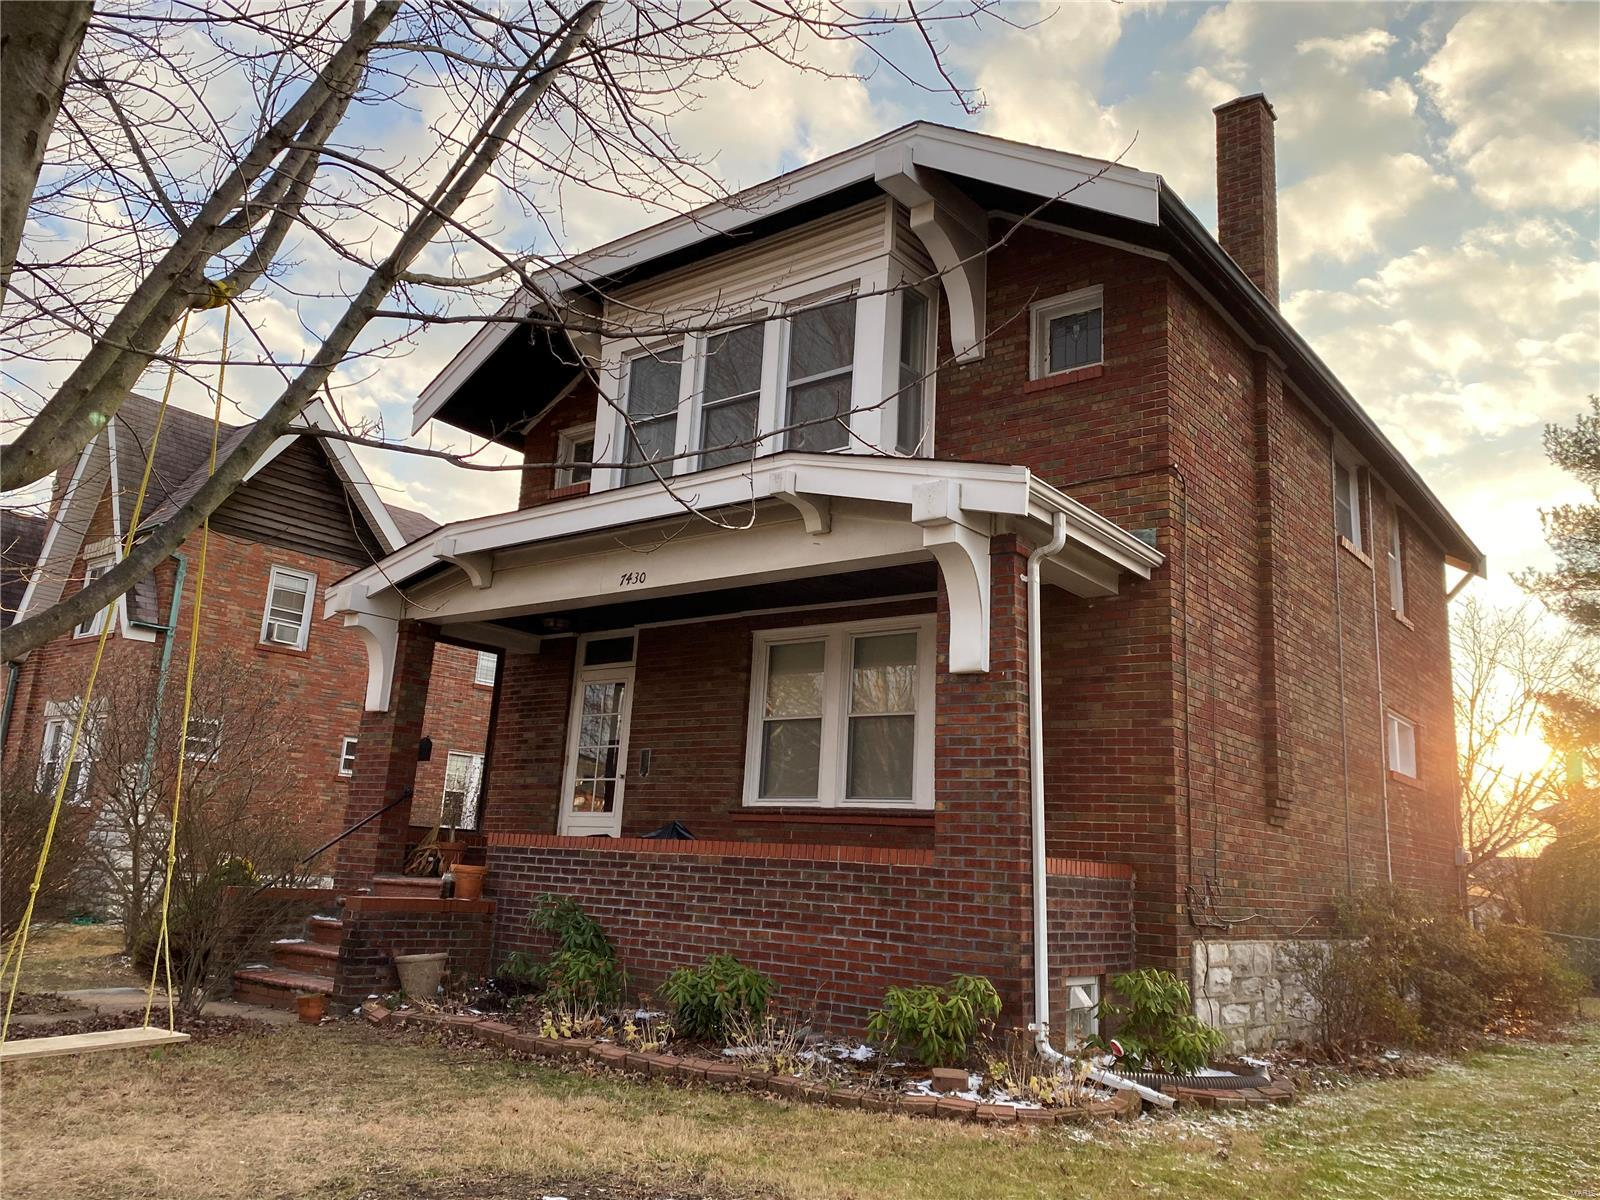 7430 Florissant Property Photo - St Louis, MO real estate listing